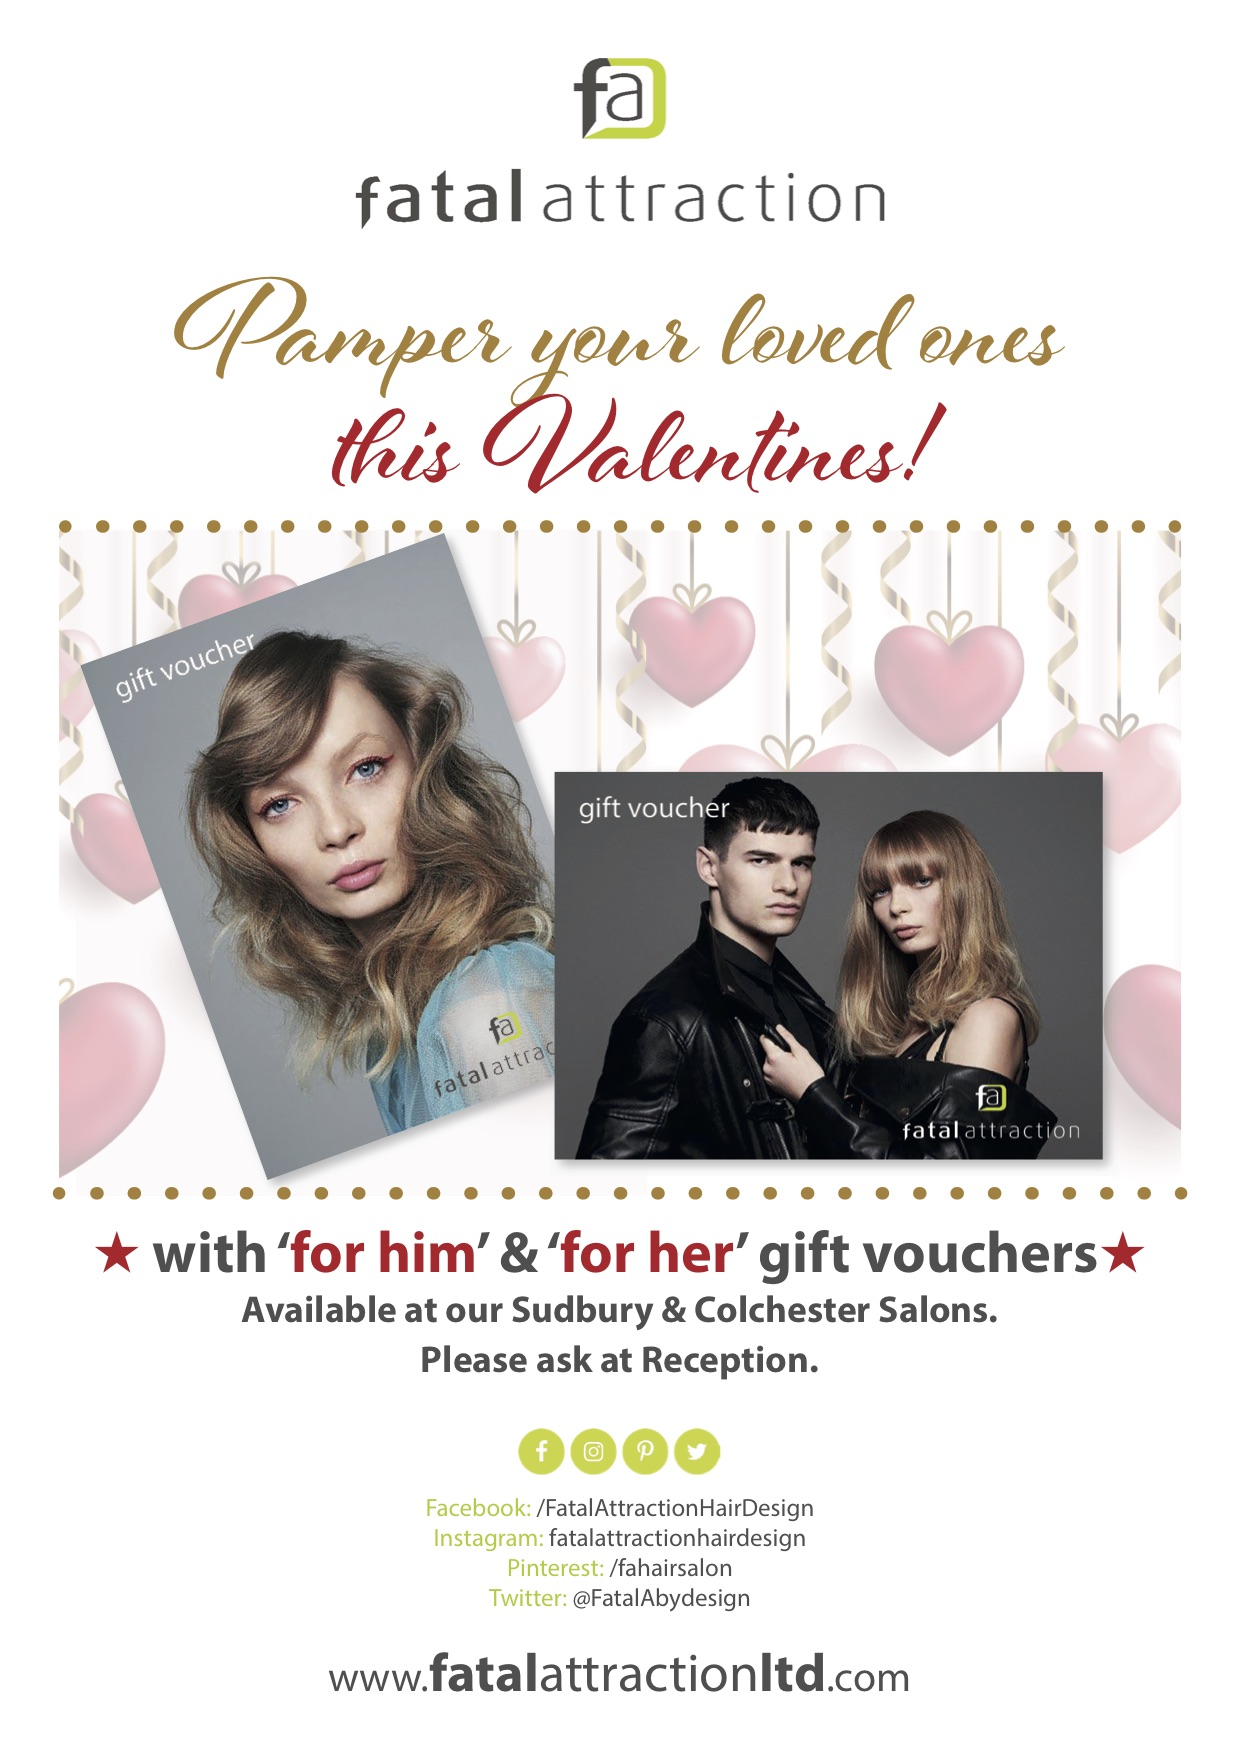 His and Hers vouchers promotion